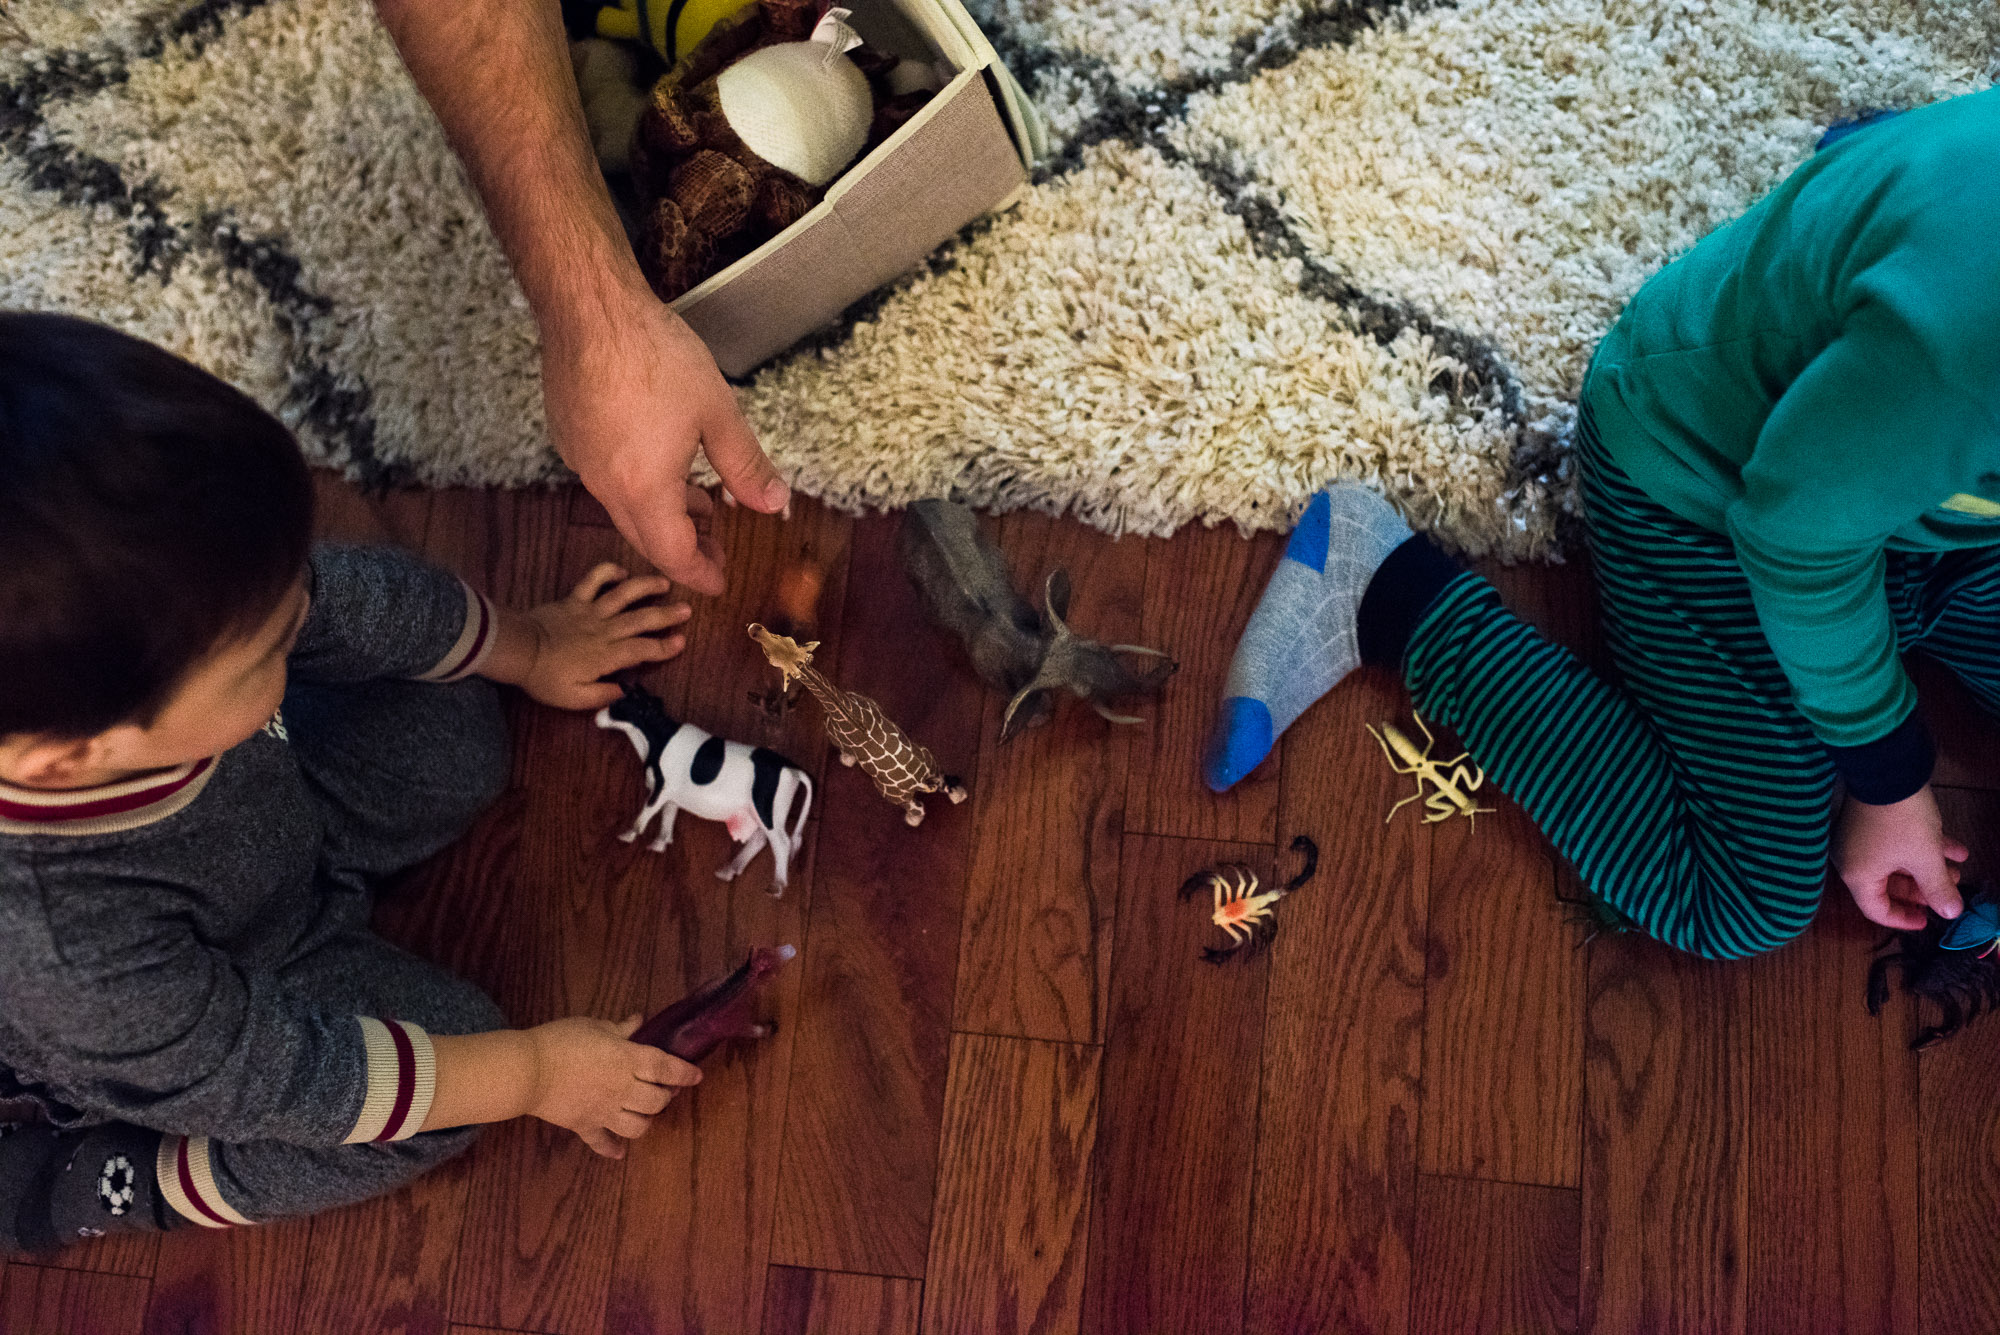 father and small boys play with farm animal toys